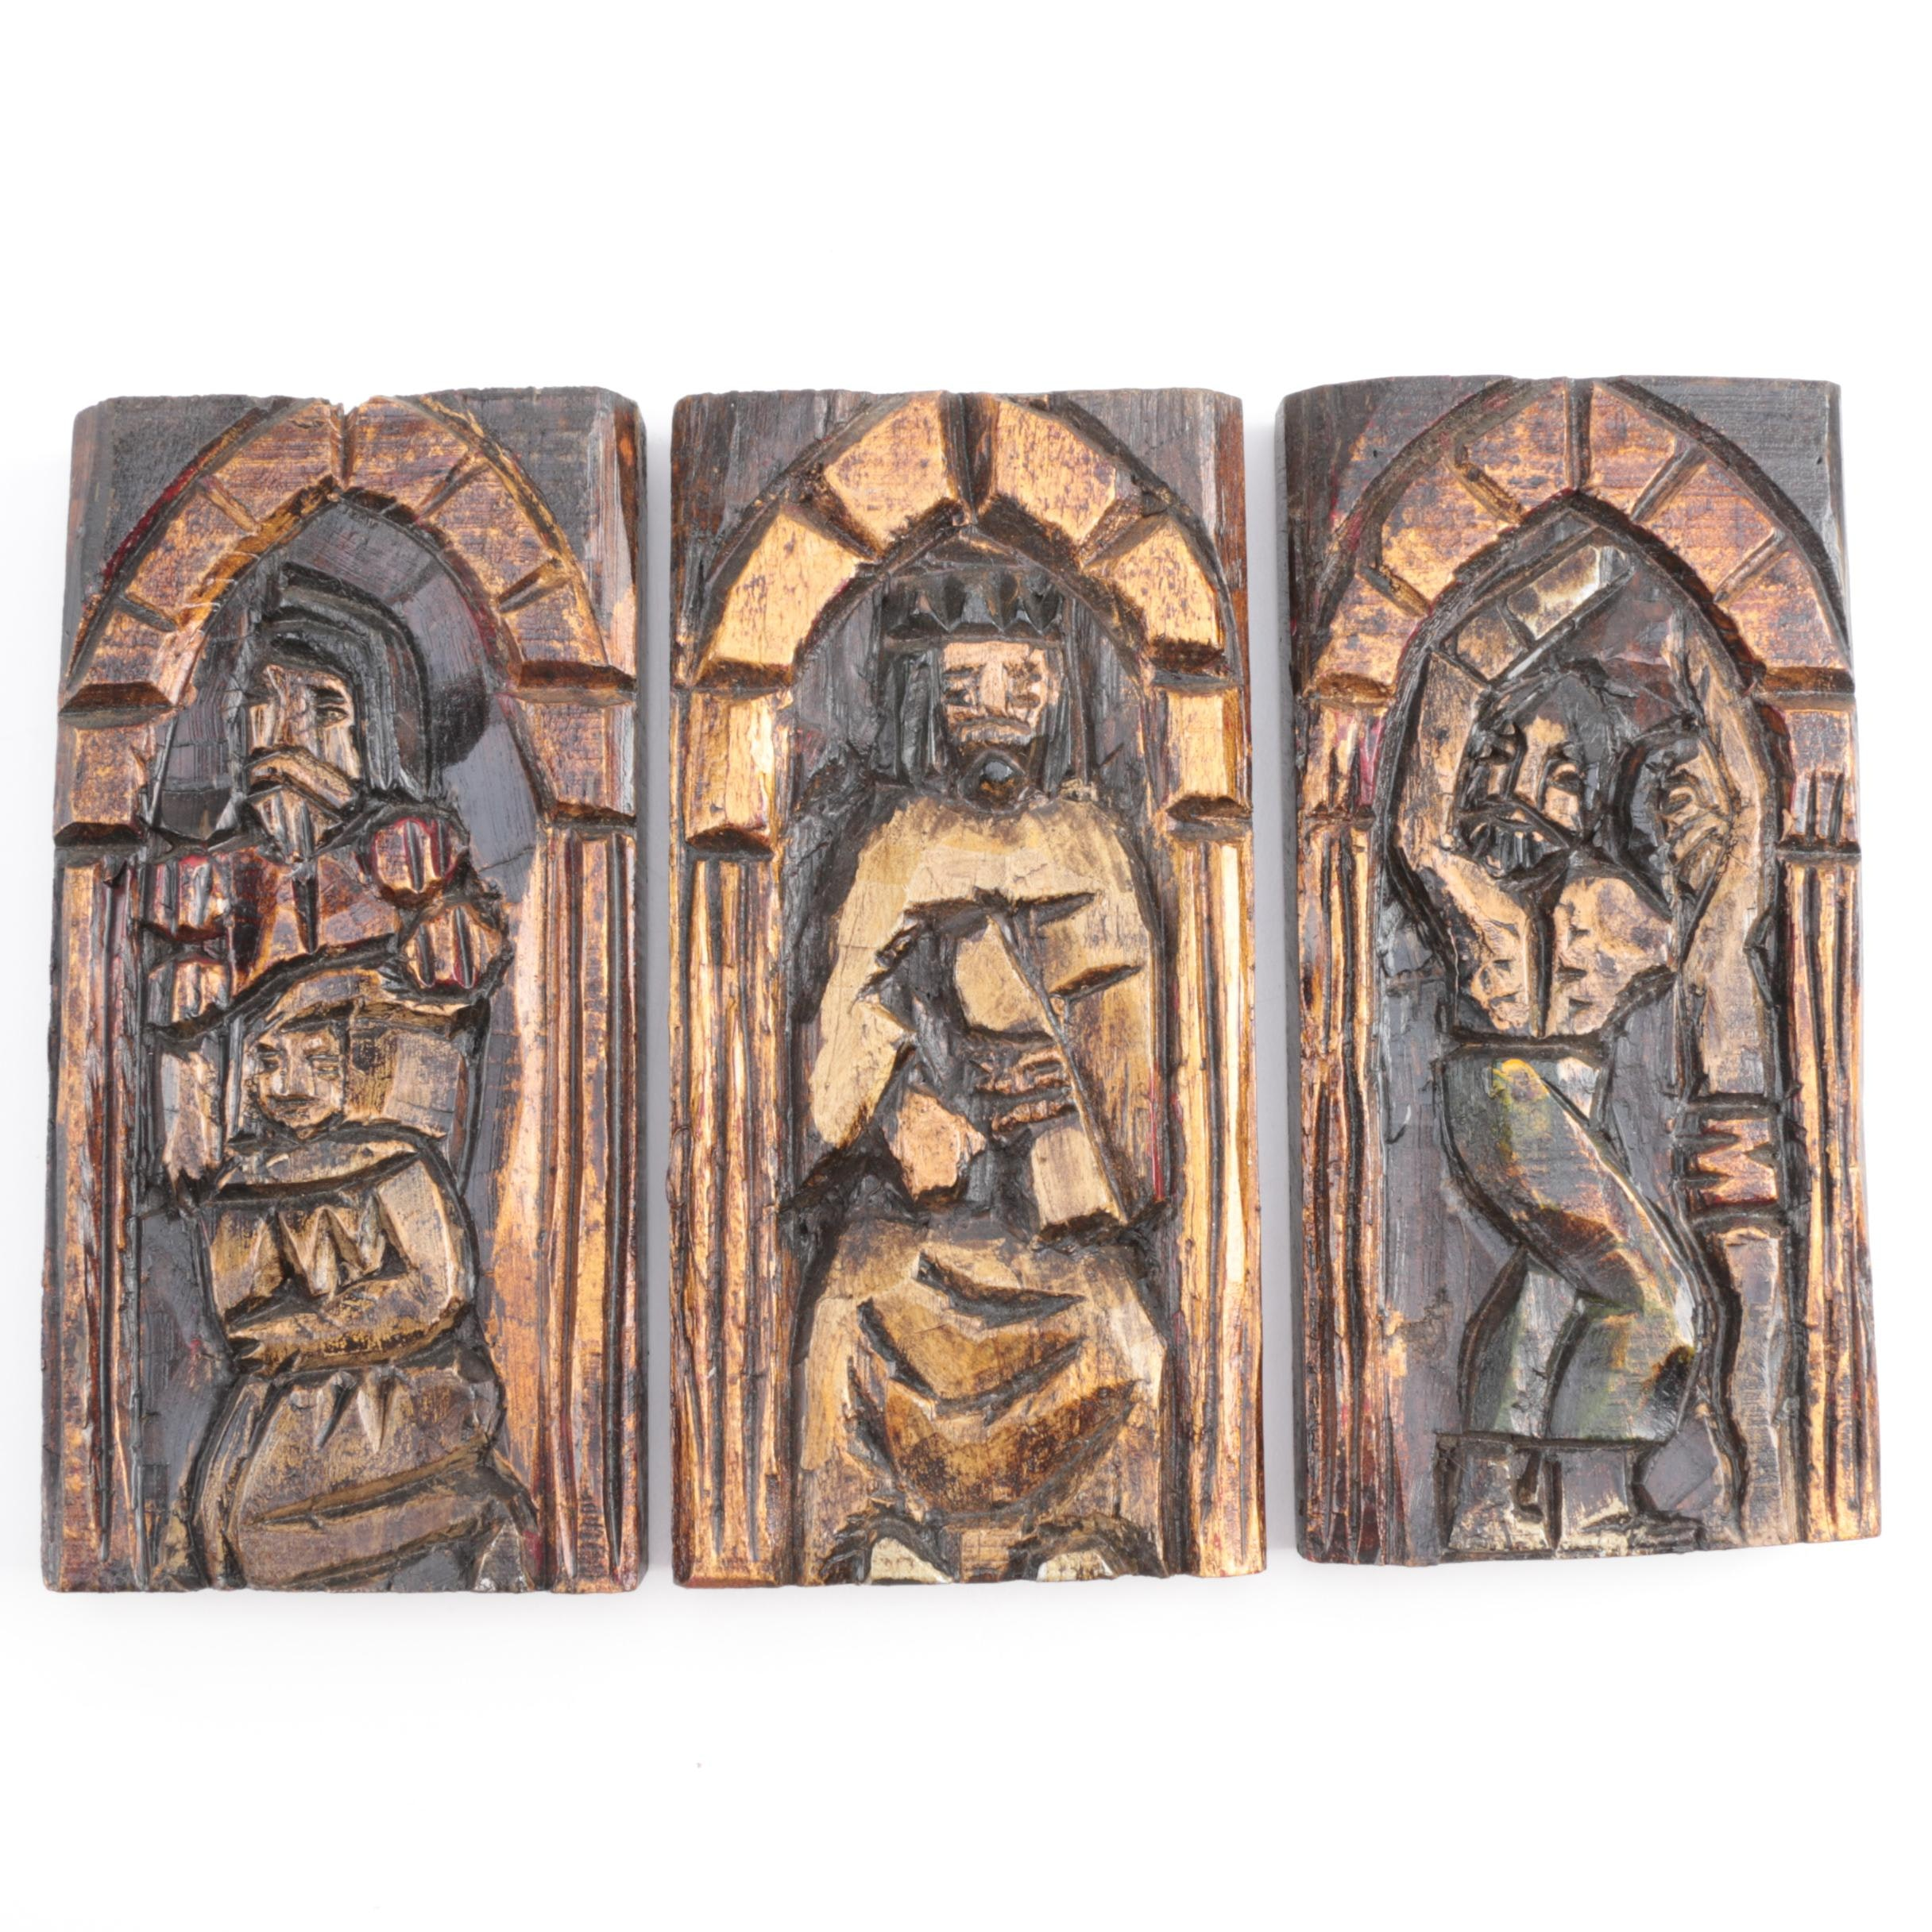 Hand Decorated Carved Wood Religious Icons